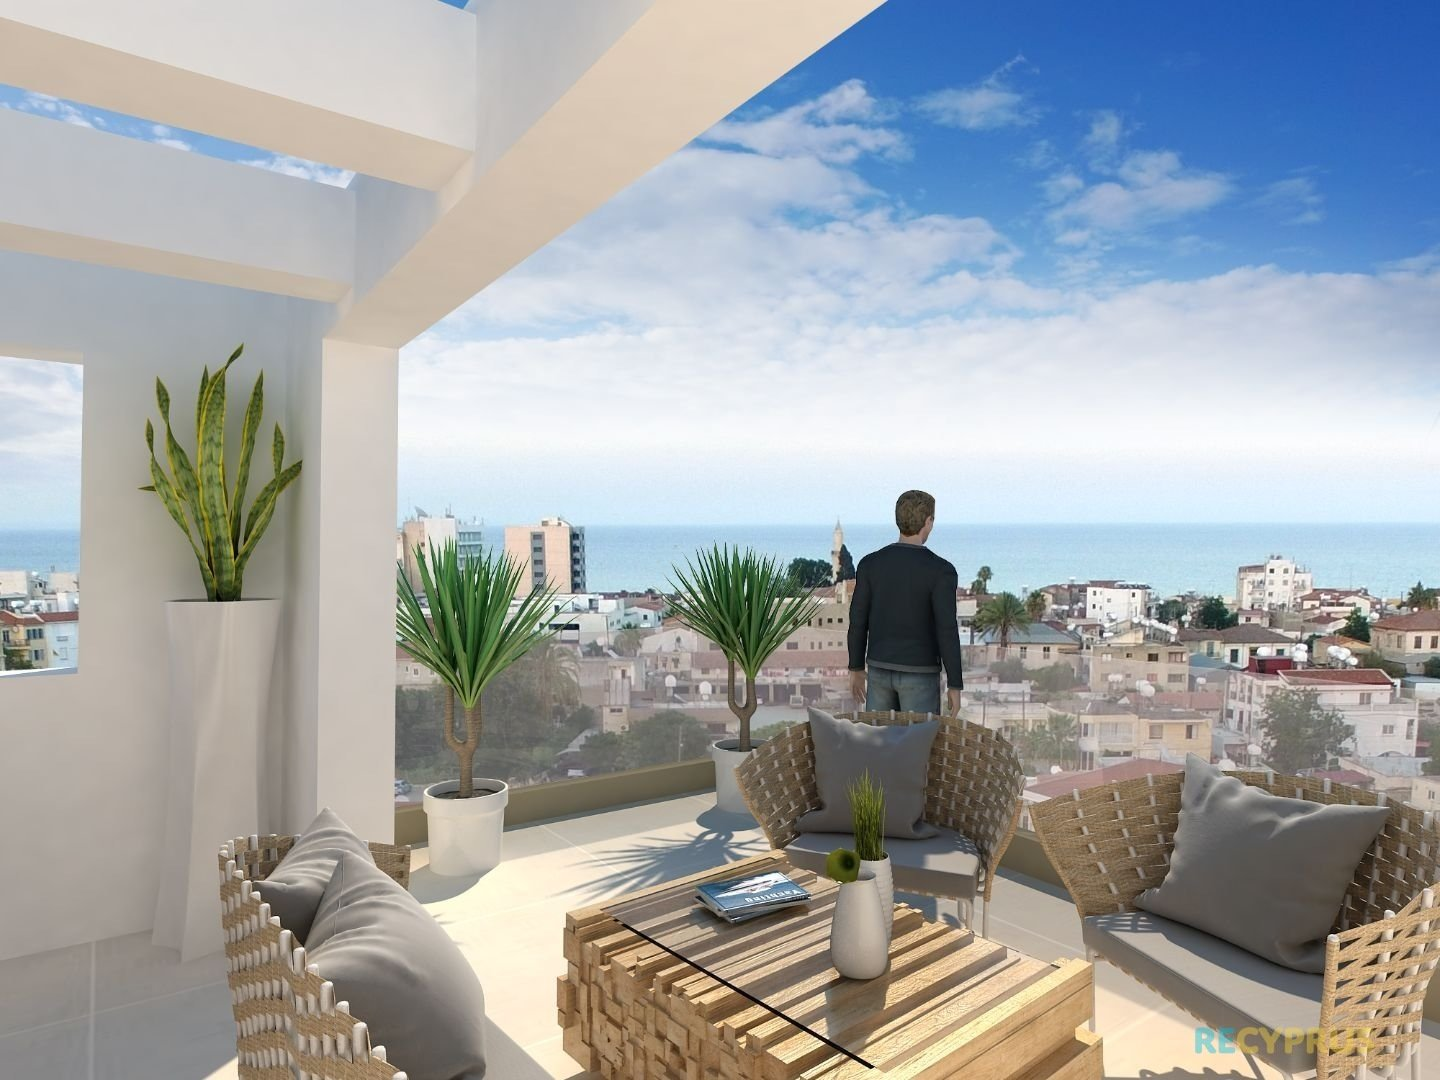 Apartment for sale City Center Larnaca Cyprus 9 3594